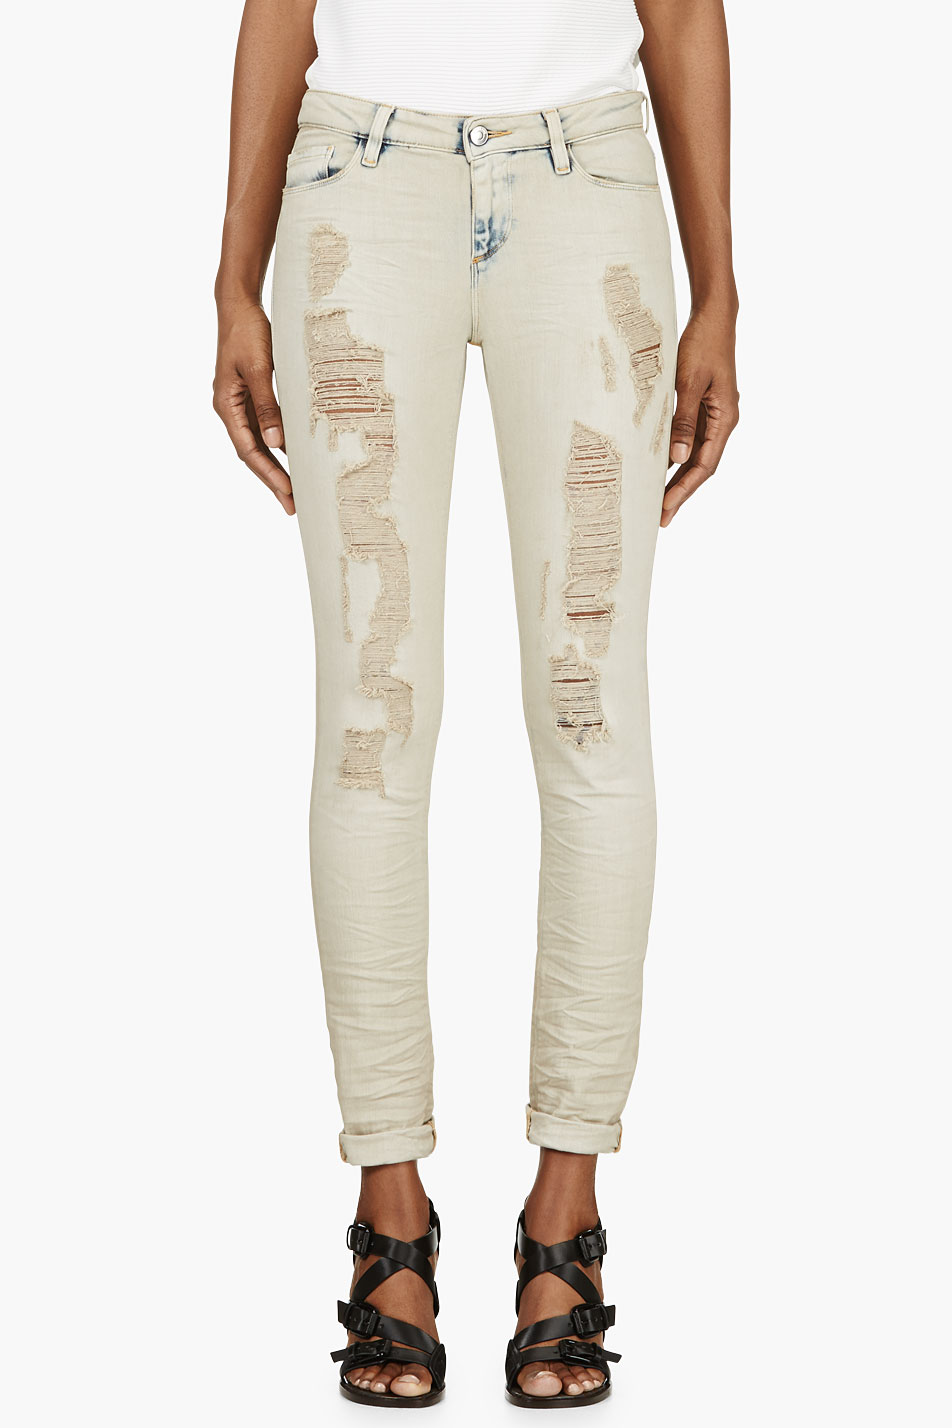 iro light beige shredded nash jeans